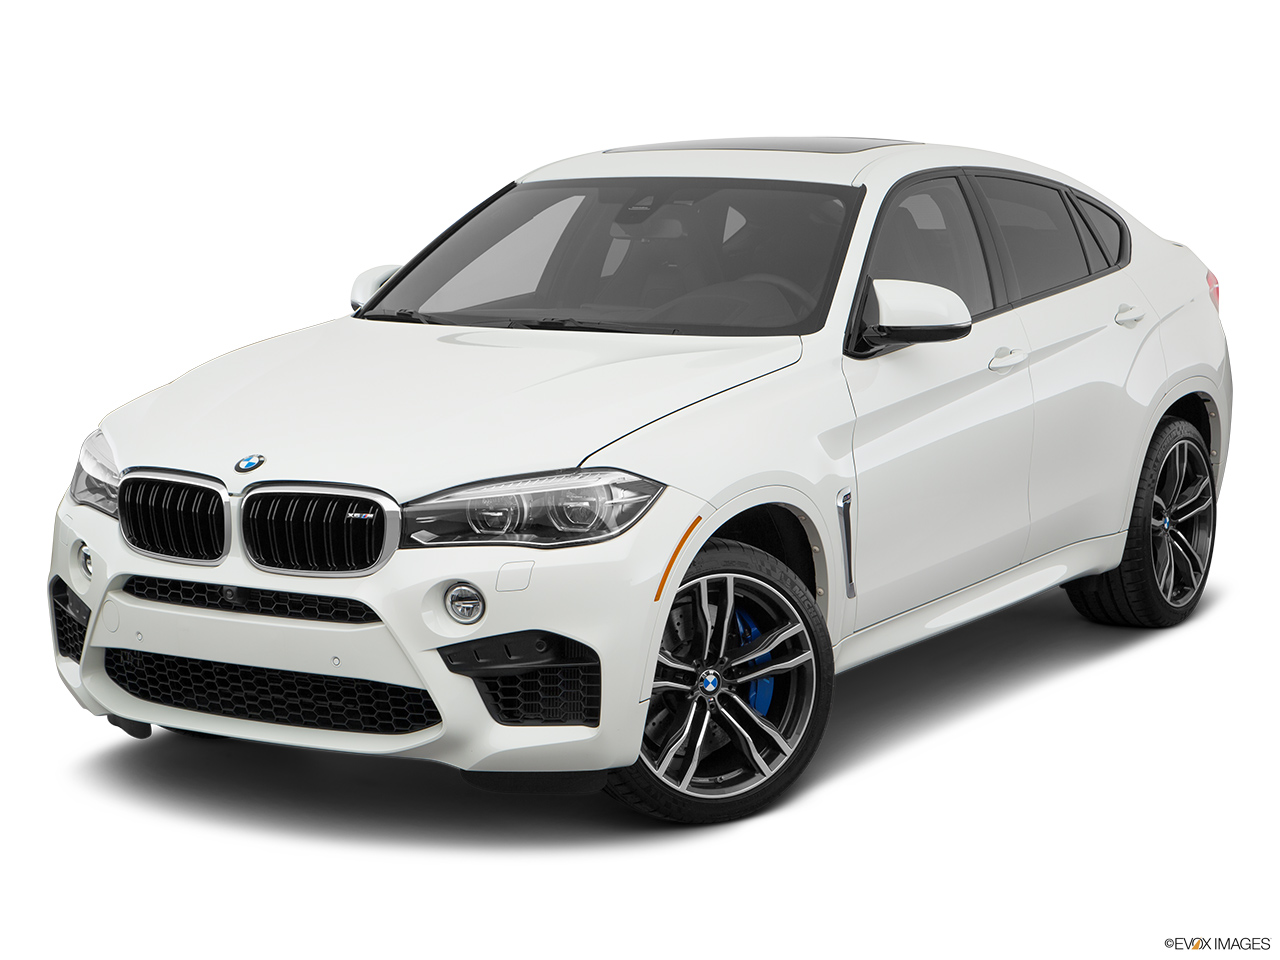 2018 bmw x6 m prices in kuwait gulf specs reviews for kuwait city yallamotor. Black Bedroom Furniture Sets. Home Design Ideas